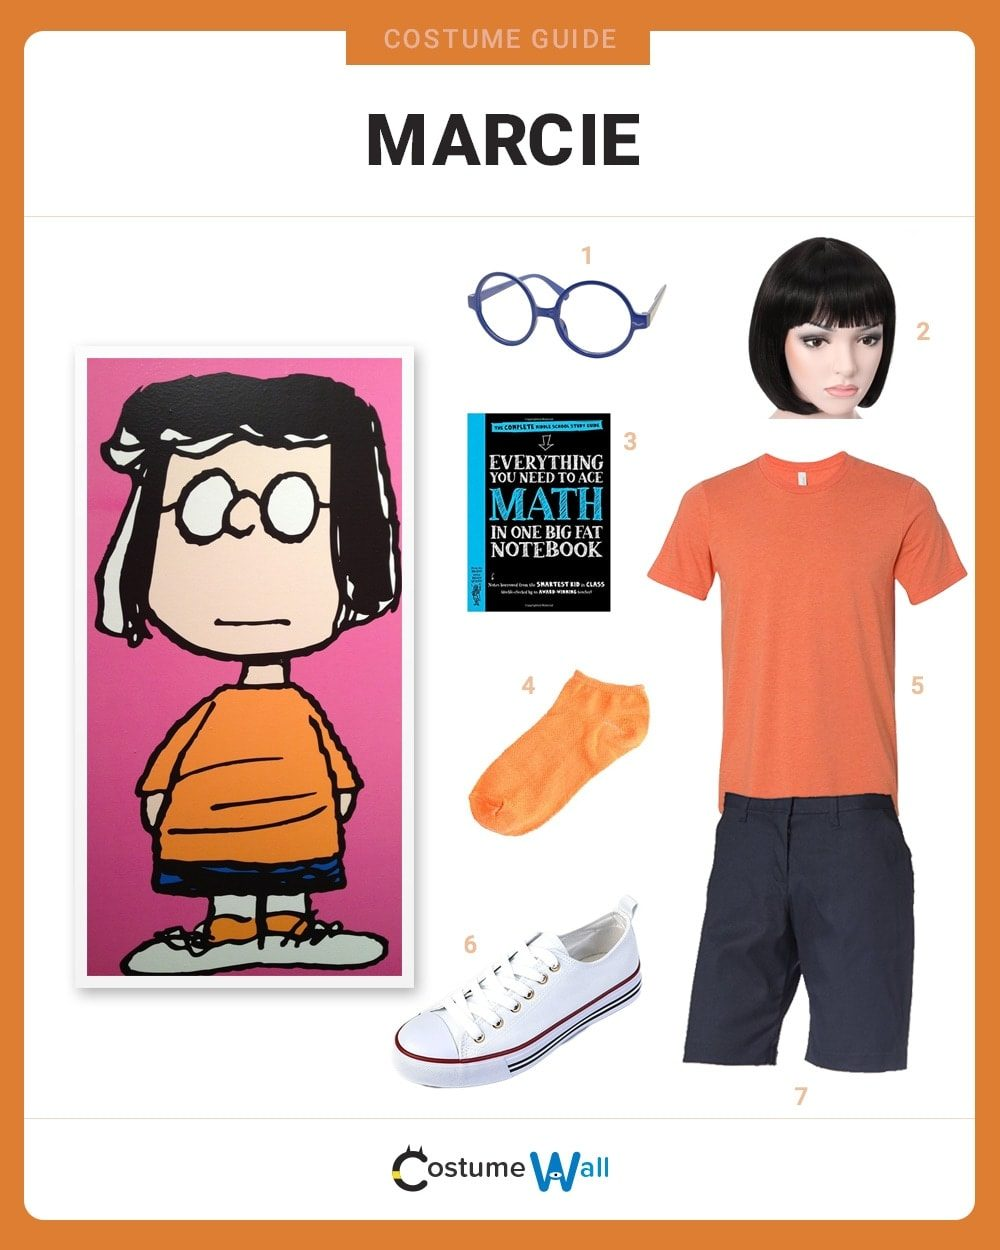 Marcie Costume Guide